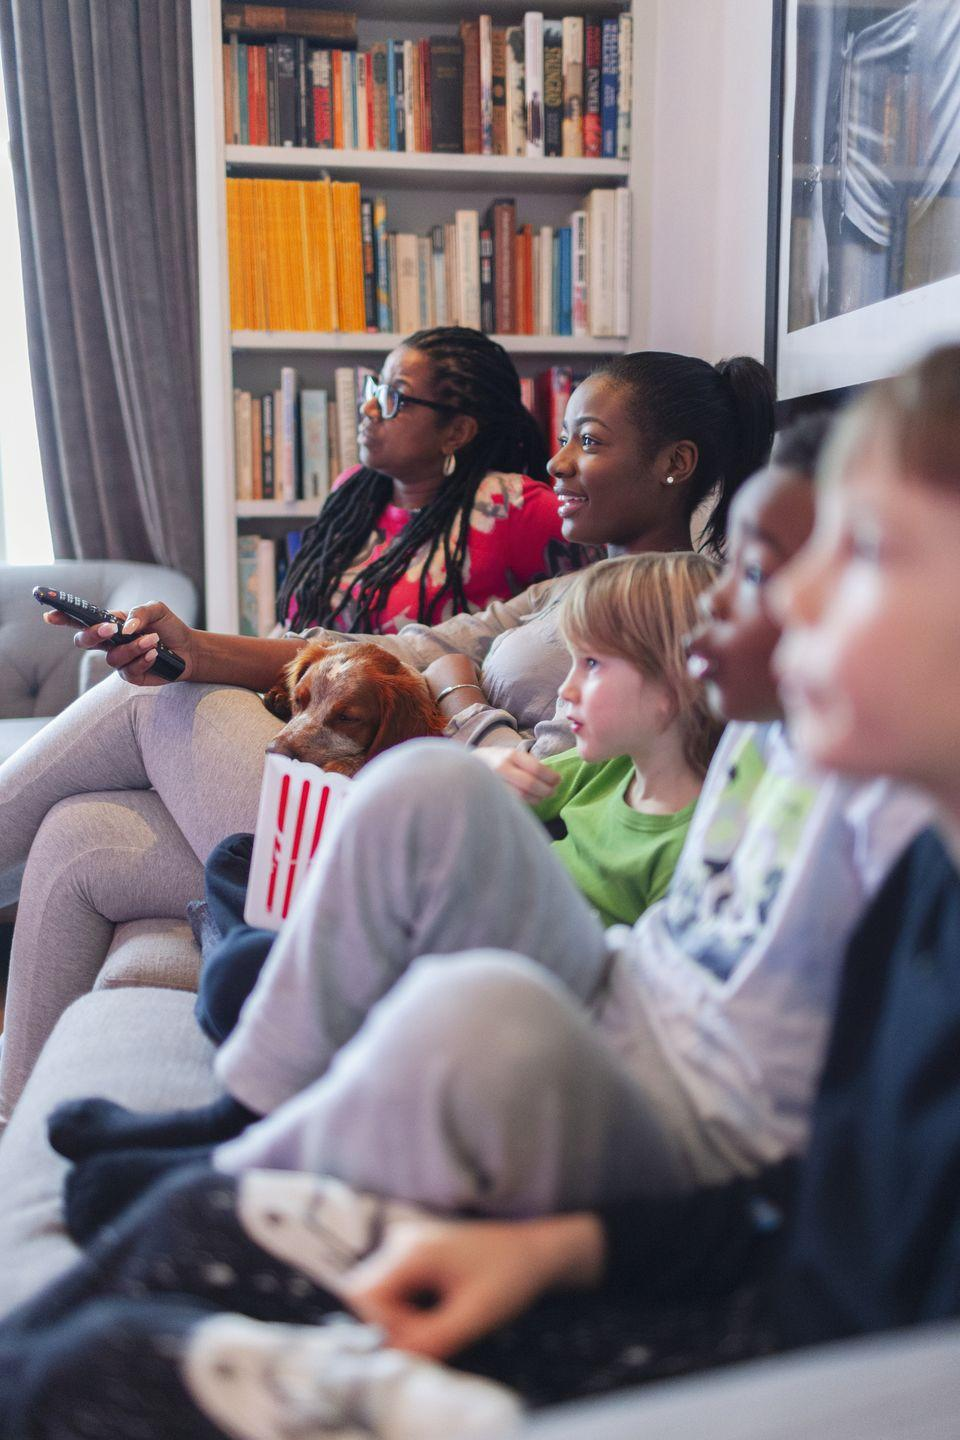 """<p>""""Help your kids set up a play date with other children who will be in their class. That can ease some of that 'Who will I sit with at lunch? anxiety and generate excitement about the new year,"""" says <a href=""""https://mindfullifetoday.com/"""" rel=""""nofollow noopener"""" target=""""_blank"""" data-ylk=""""slk:Kristen Race"""" class=""""link rapid-noclick-resp"""">Kristen Race</a>, PhD, author of <em><a href=""""https://www.amazon.com/Mindful-Parenting-Powerful-Solutions-Creative/dp/125002031X/ref=tmm_pap_swatch_0?_encoding=UTF8&qid=&sr="""" rel=""""nofollow noopener"""" target=""""_blank"""" data-ylk=""""slk:Mindful Parenting"""" class=""""link rapid-noclick-resp"""">Mindful Parenting</a></em>. Also, check if your school hosts any events where your child will have an opportunity to <a href=""""https://www.womansday.com/life/g353/10-gift-ideas-for-teachers/"""" rel=""""nofollow noopener"""" target=""""_blank"""" data-ylk=""""slk:meet their teacher."""" class=""""link rapid-noclick-resp"""">meet their teacher.</a></p>"""